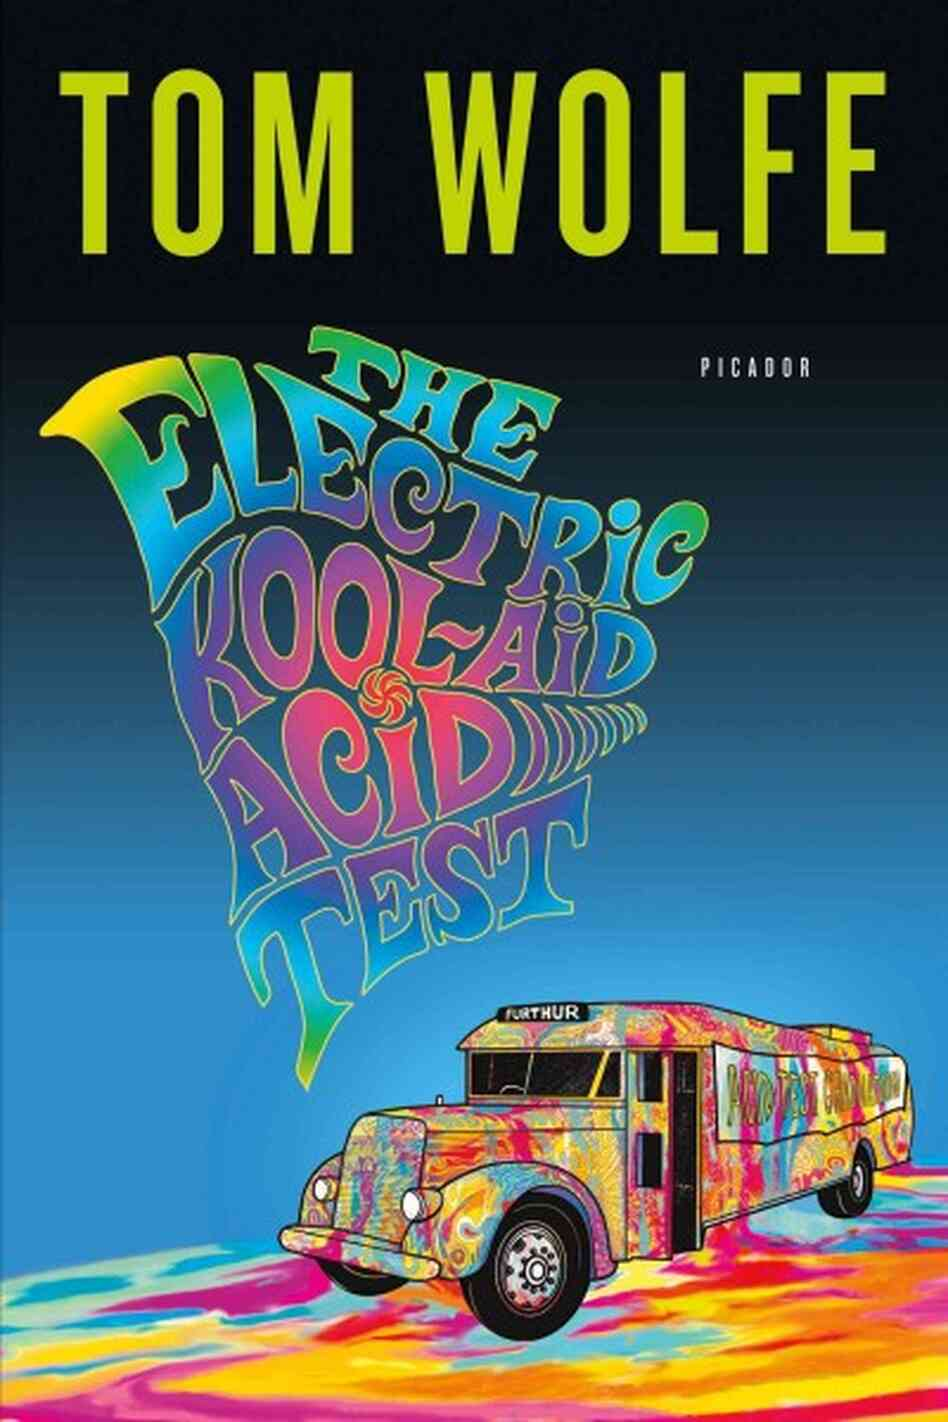 a review of the electric kool aid acid test by tom wolfe Gus van sant directs the big-screen adaptation of tom wolfe's nonfiction book about author ken kesey and his merry pranksters as they traveled around the country.